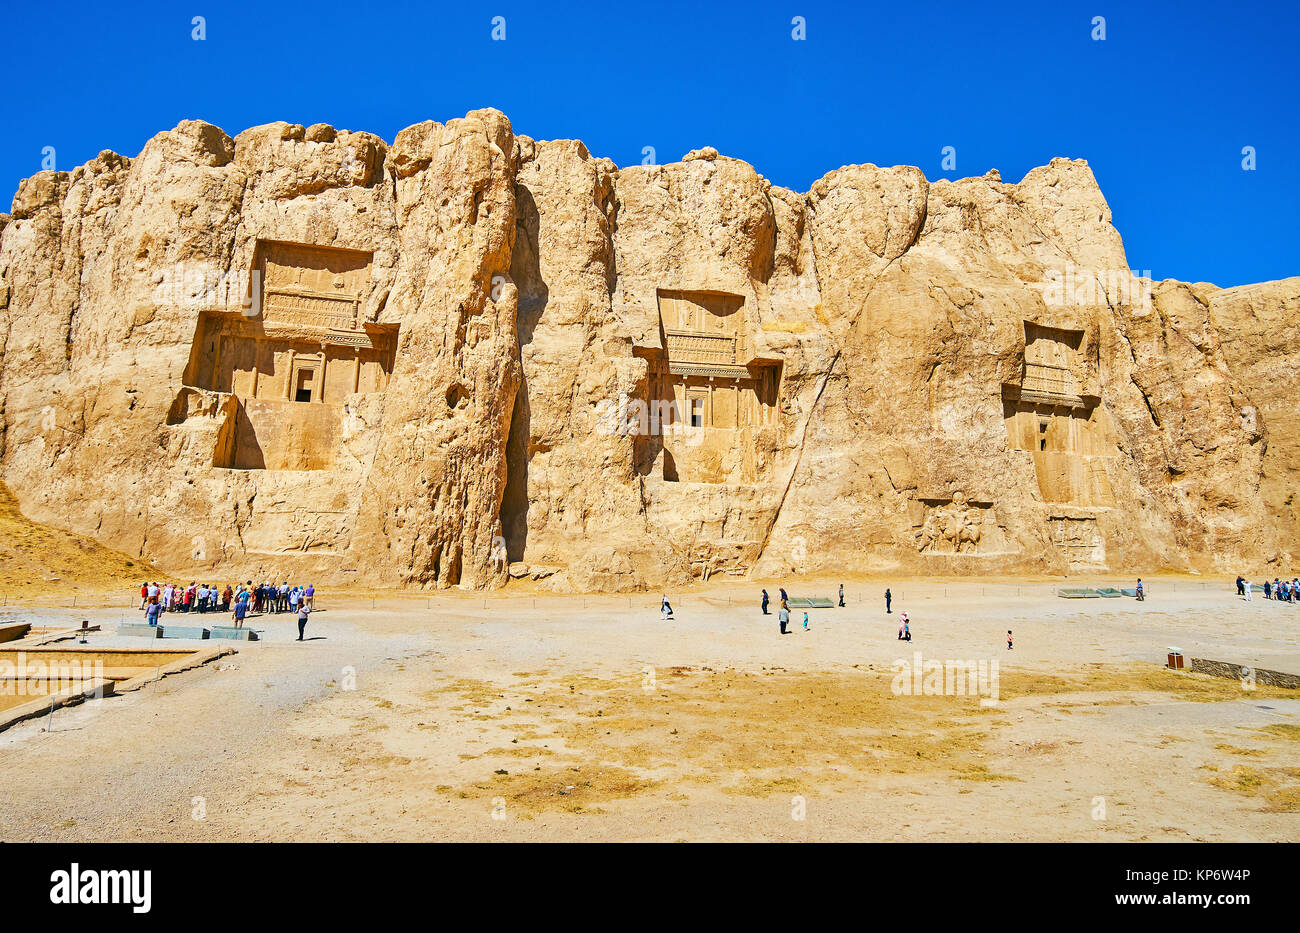 NAQSH-E RUSTAM, IRAN - OCTOBER 13, 2017: Panorama of the cliff with carved tombs of ancient Persian rulers, known - Stock Image